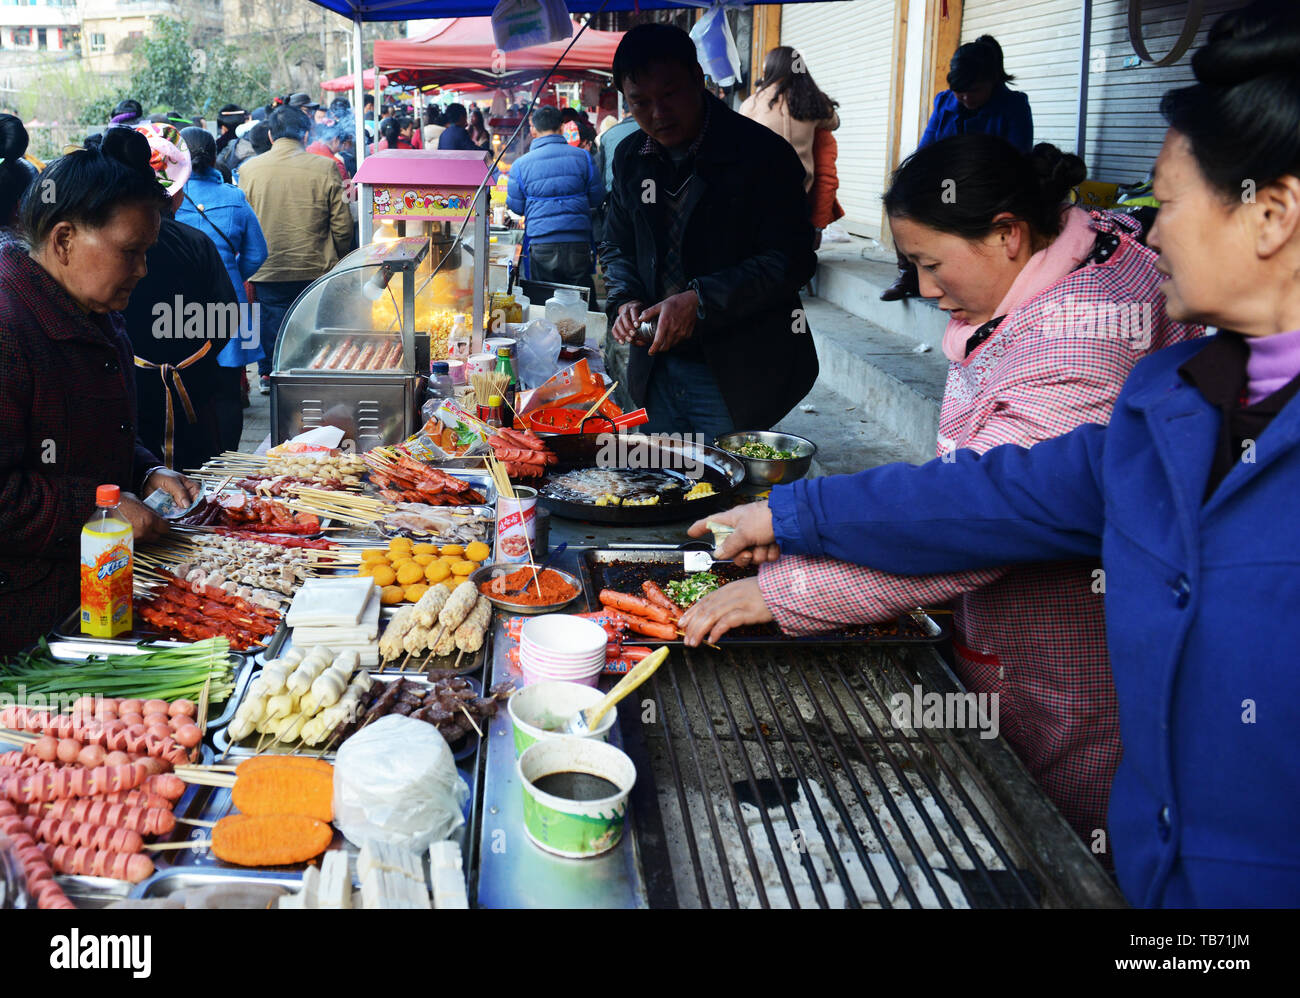 Grilled sausages stall in Guizhou, China Stock Photo